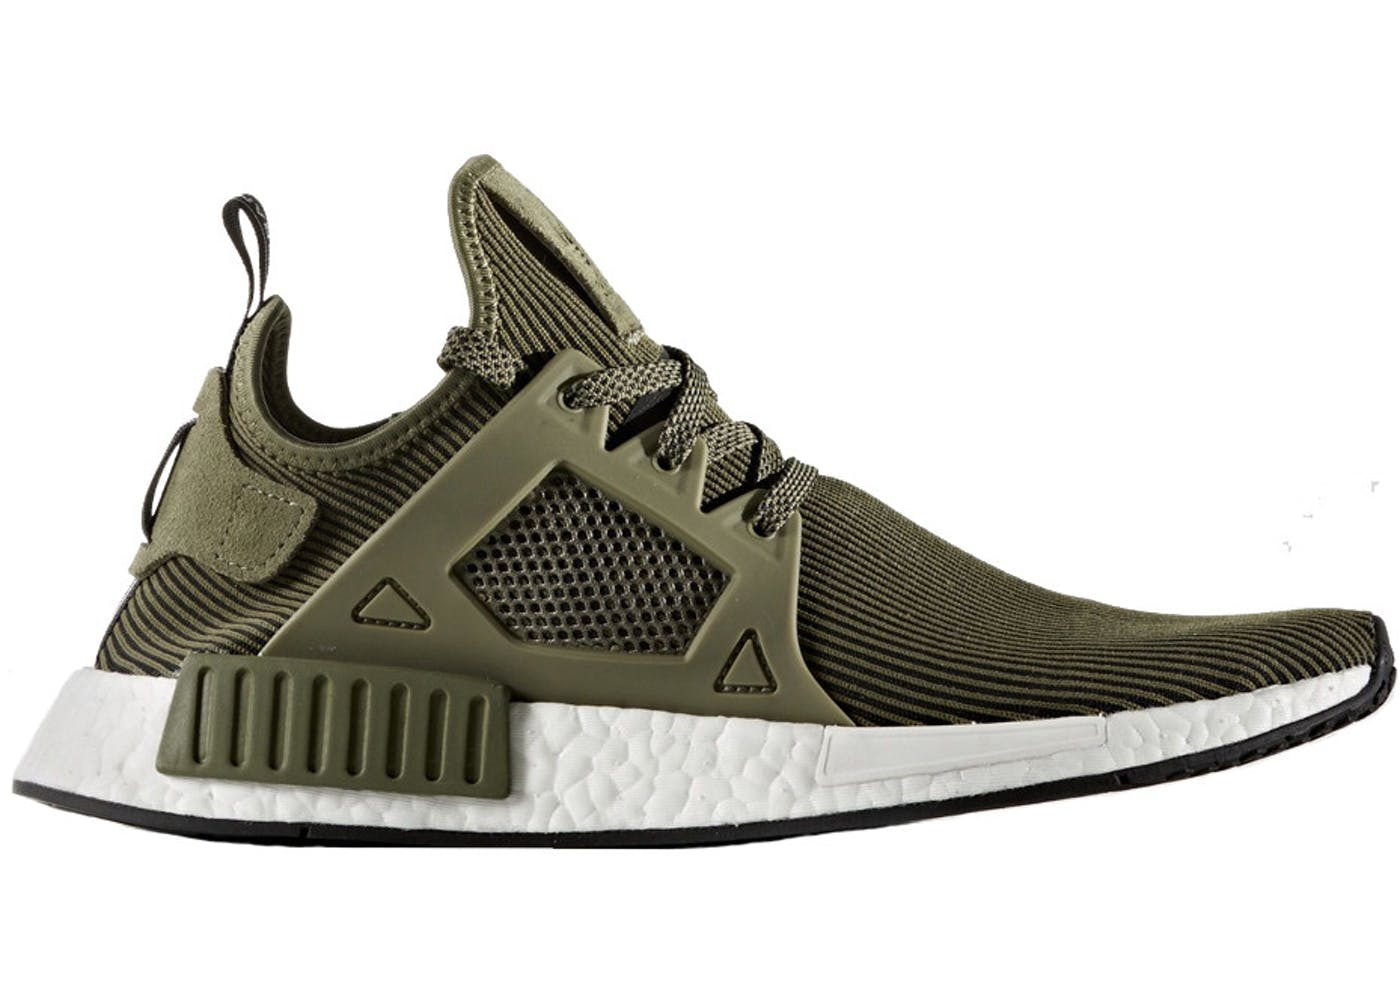 73ae1693c Adidas Nmd Xr1 Colorways kenmore-cleaning.co.uk